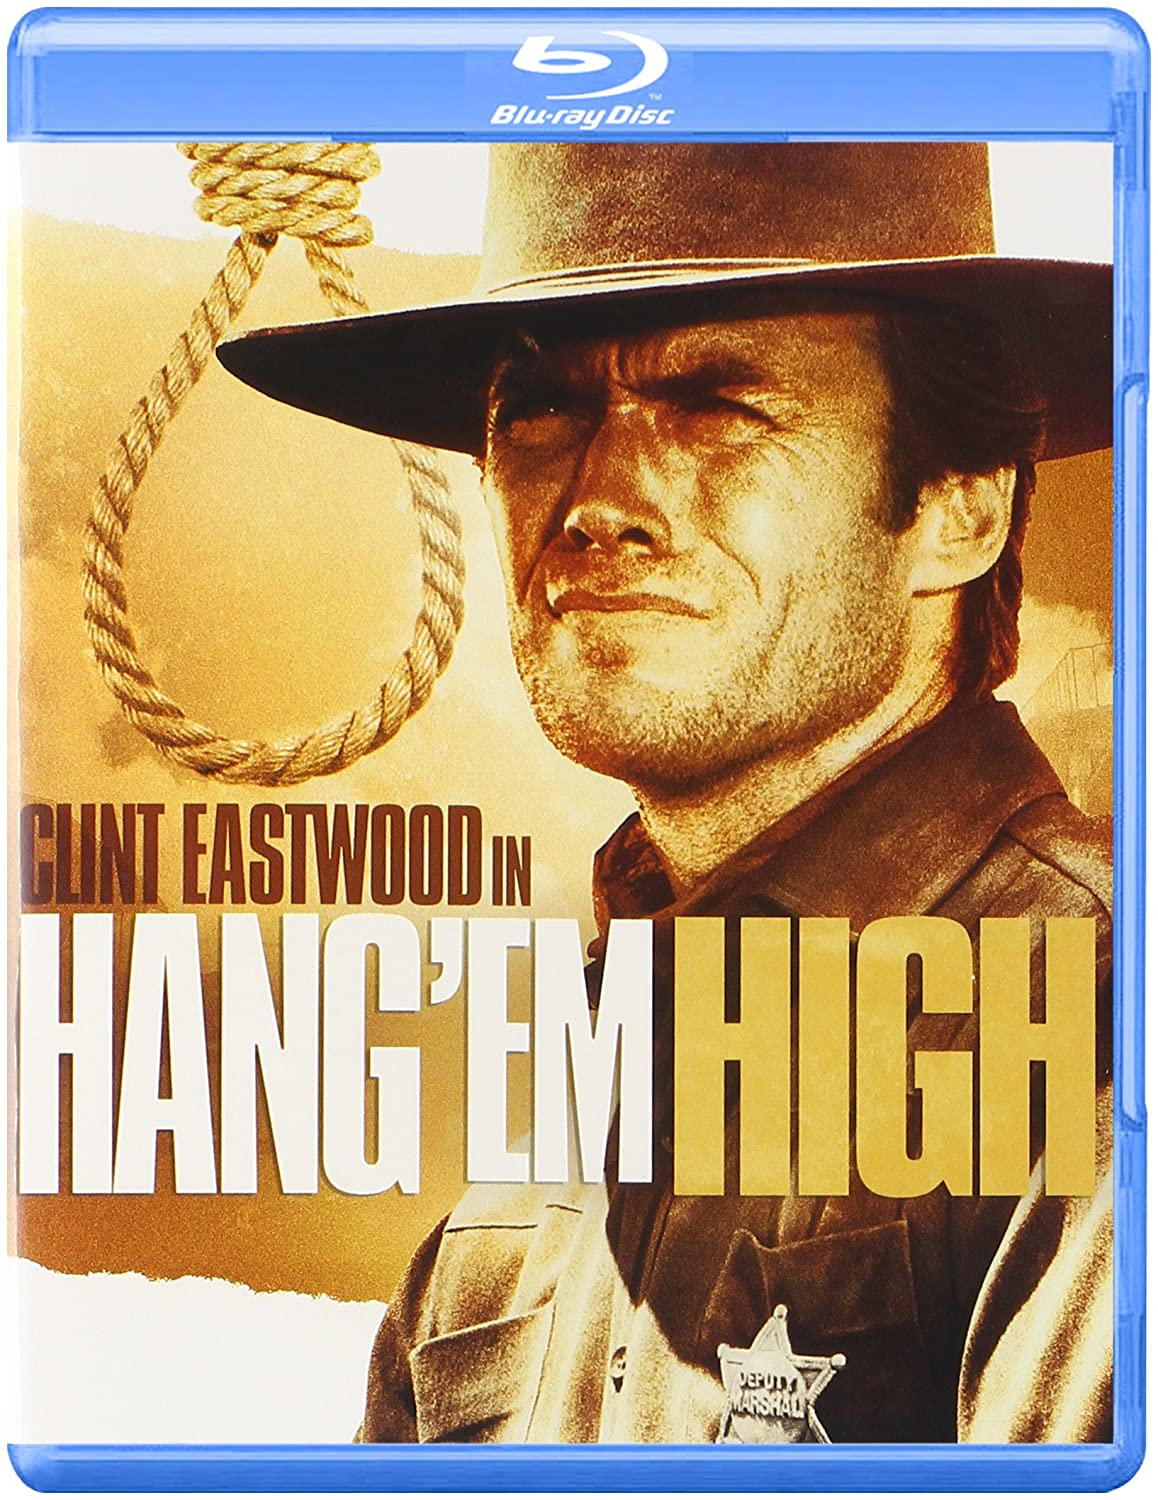 Hang 'Em Outlet sale feature High Max 51% OFF